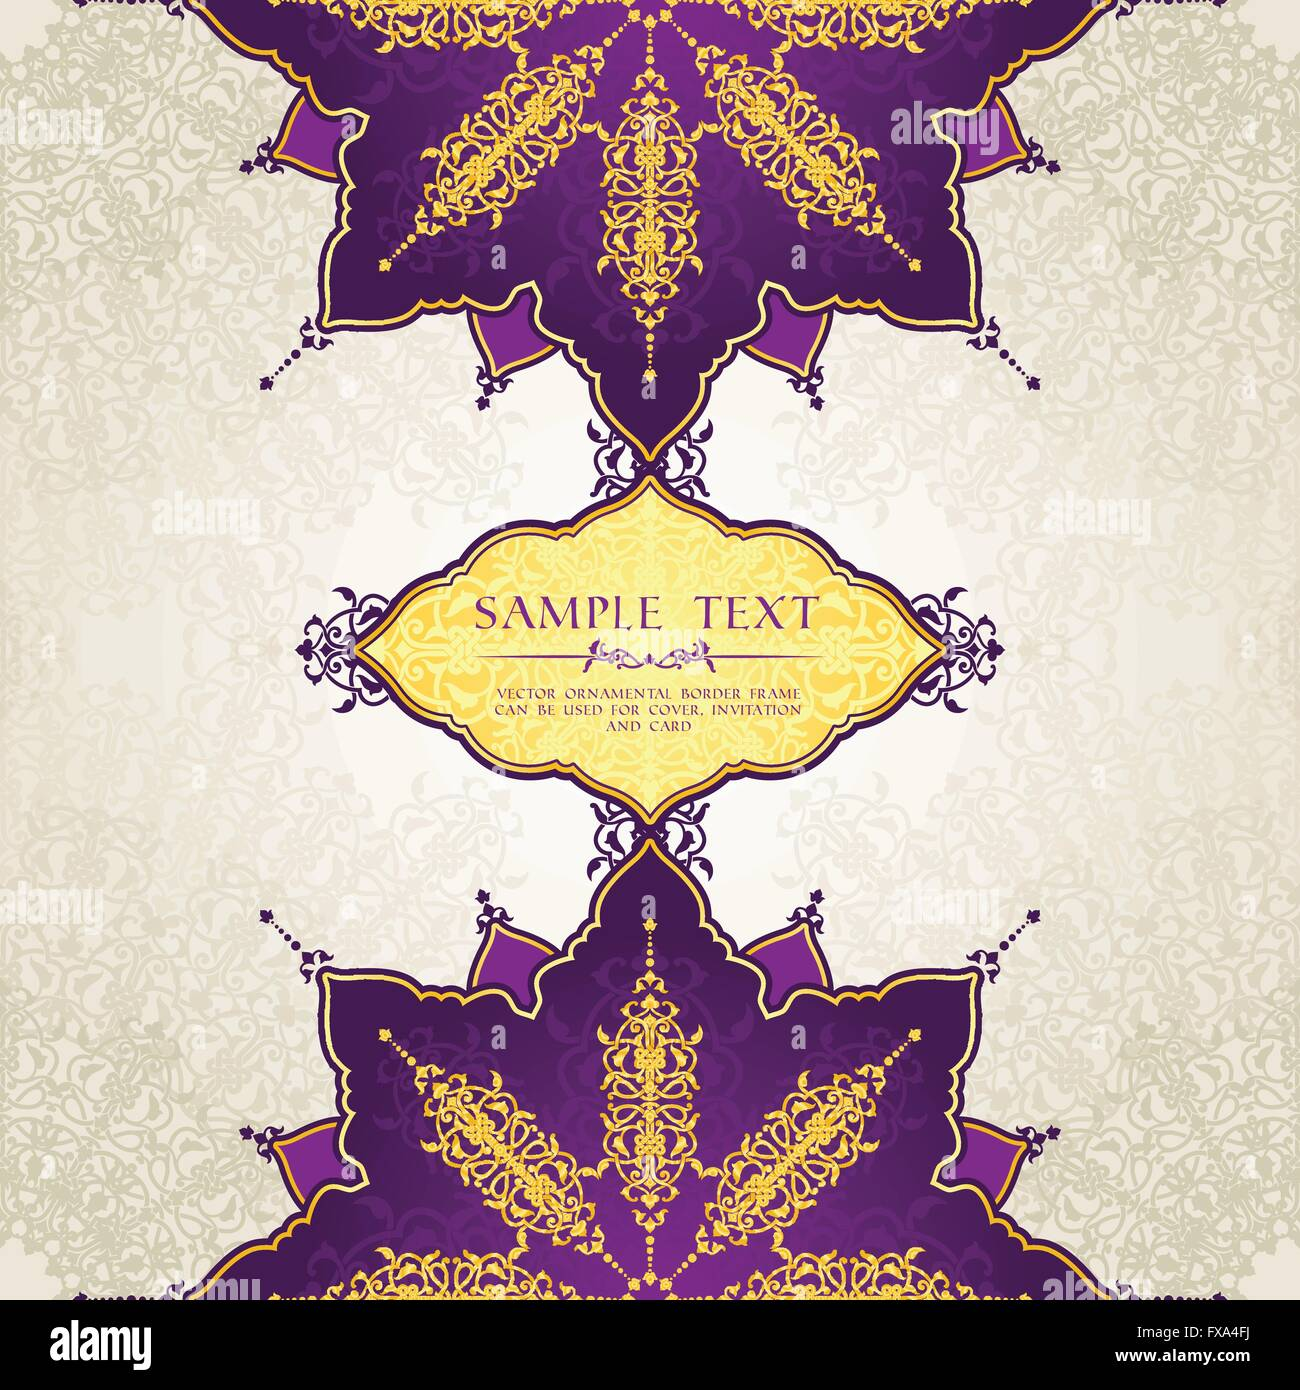 Template For Invitation Card In Arabic Or Muslim Style Stock Vector